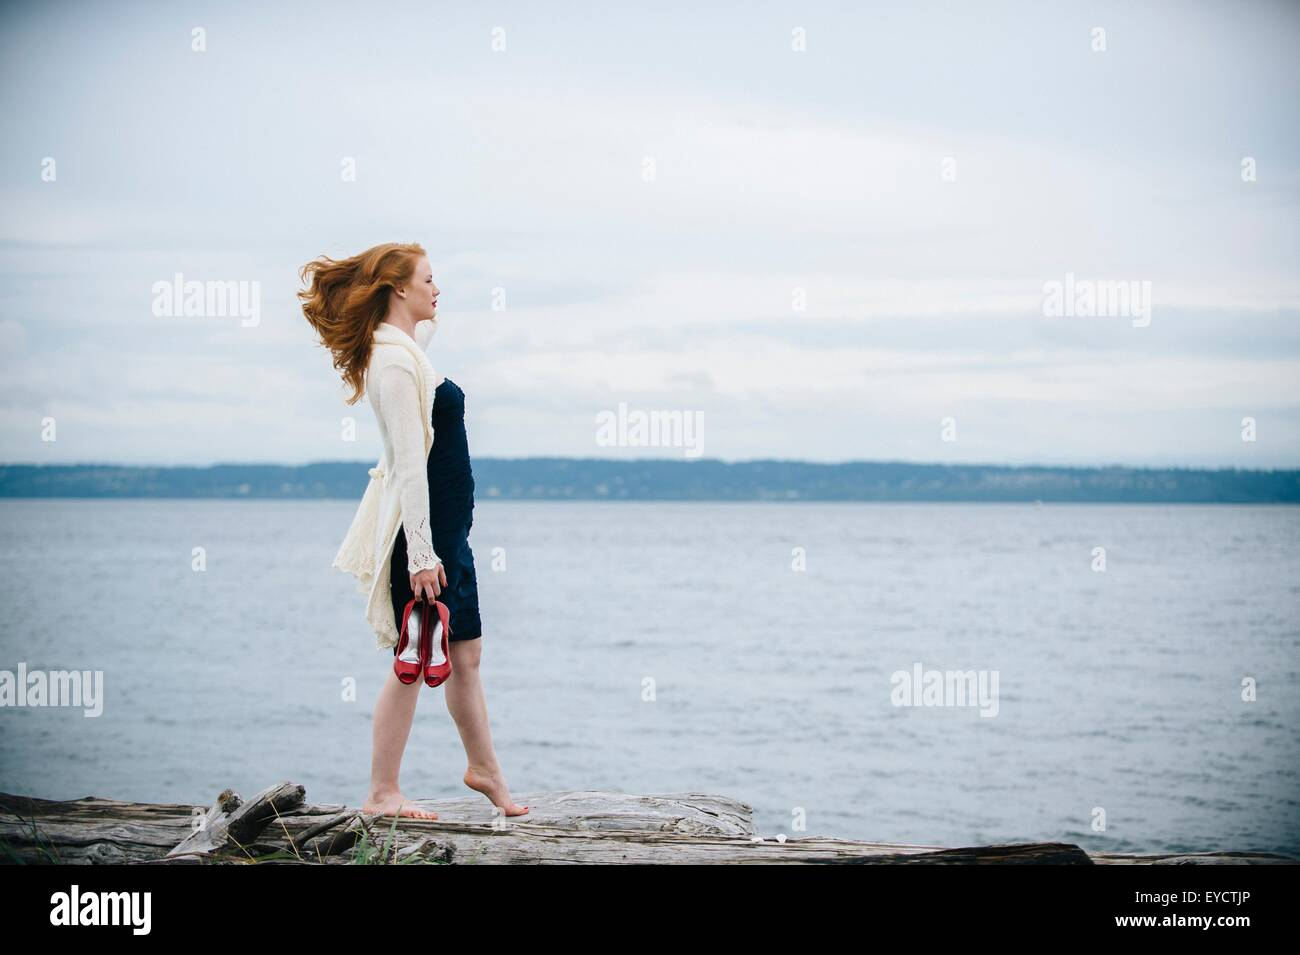 Young woman on beach looking out to sea, Bainbridge Island, Washington State, USA - Stock Image